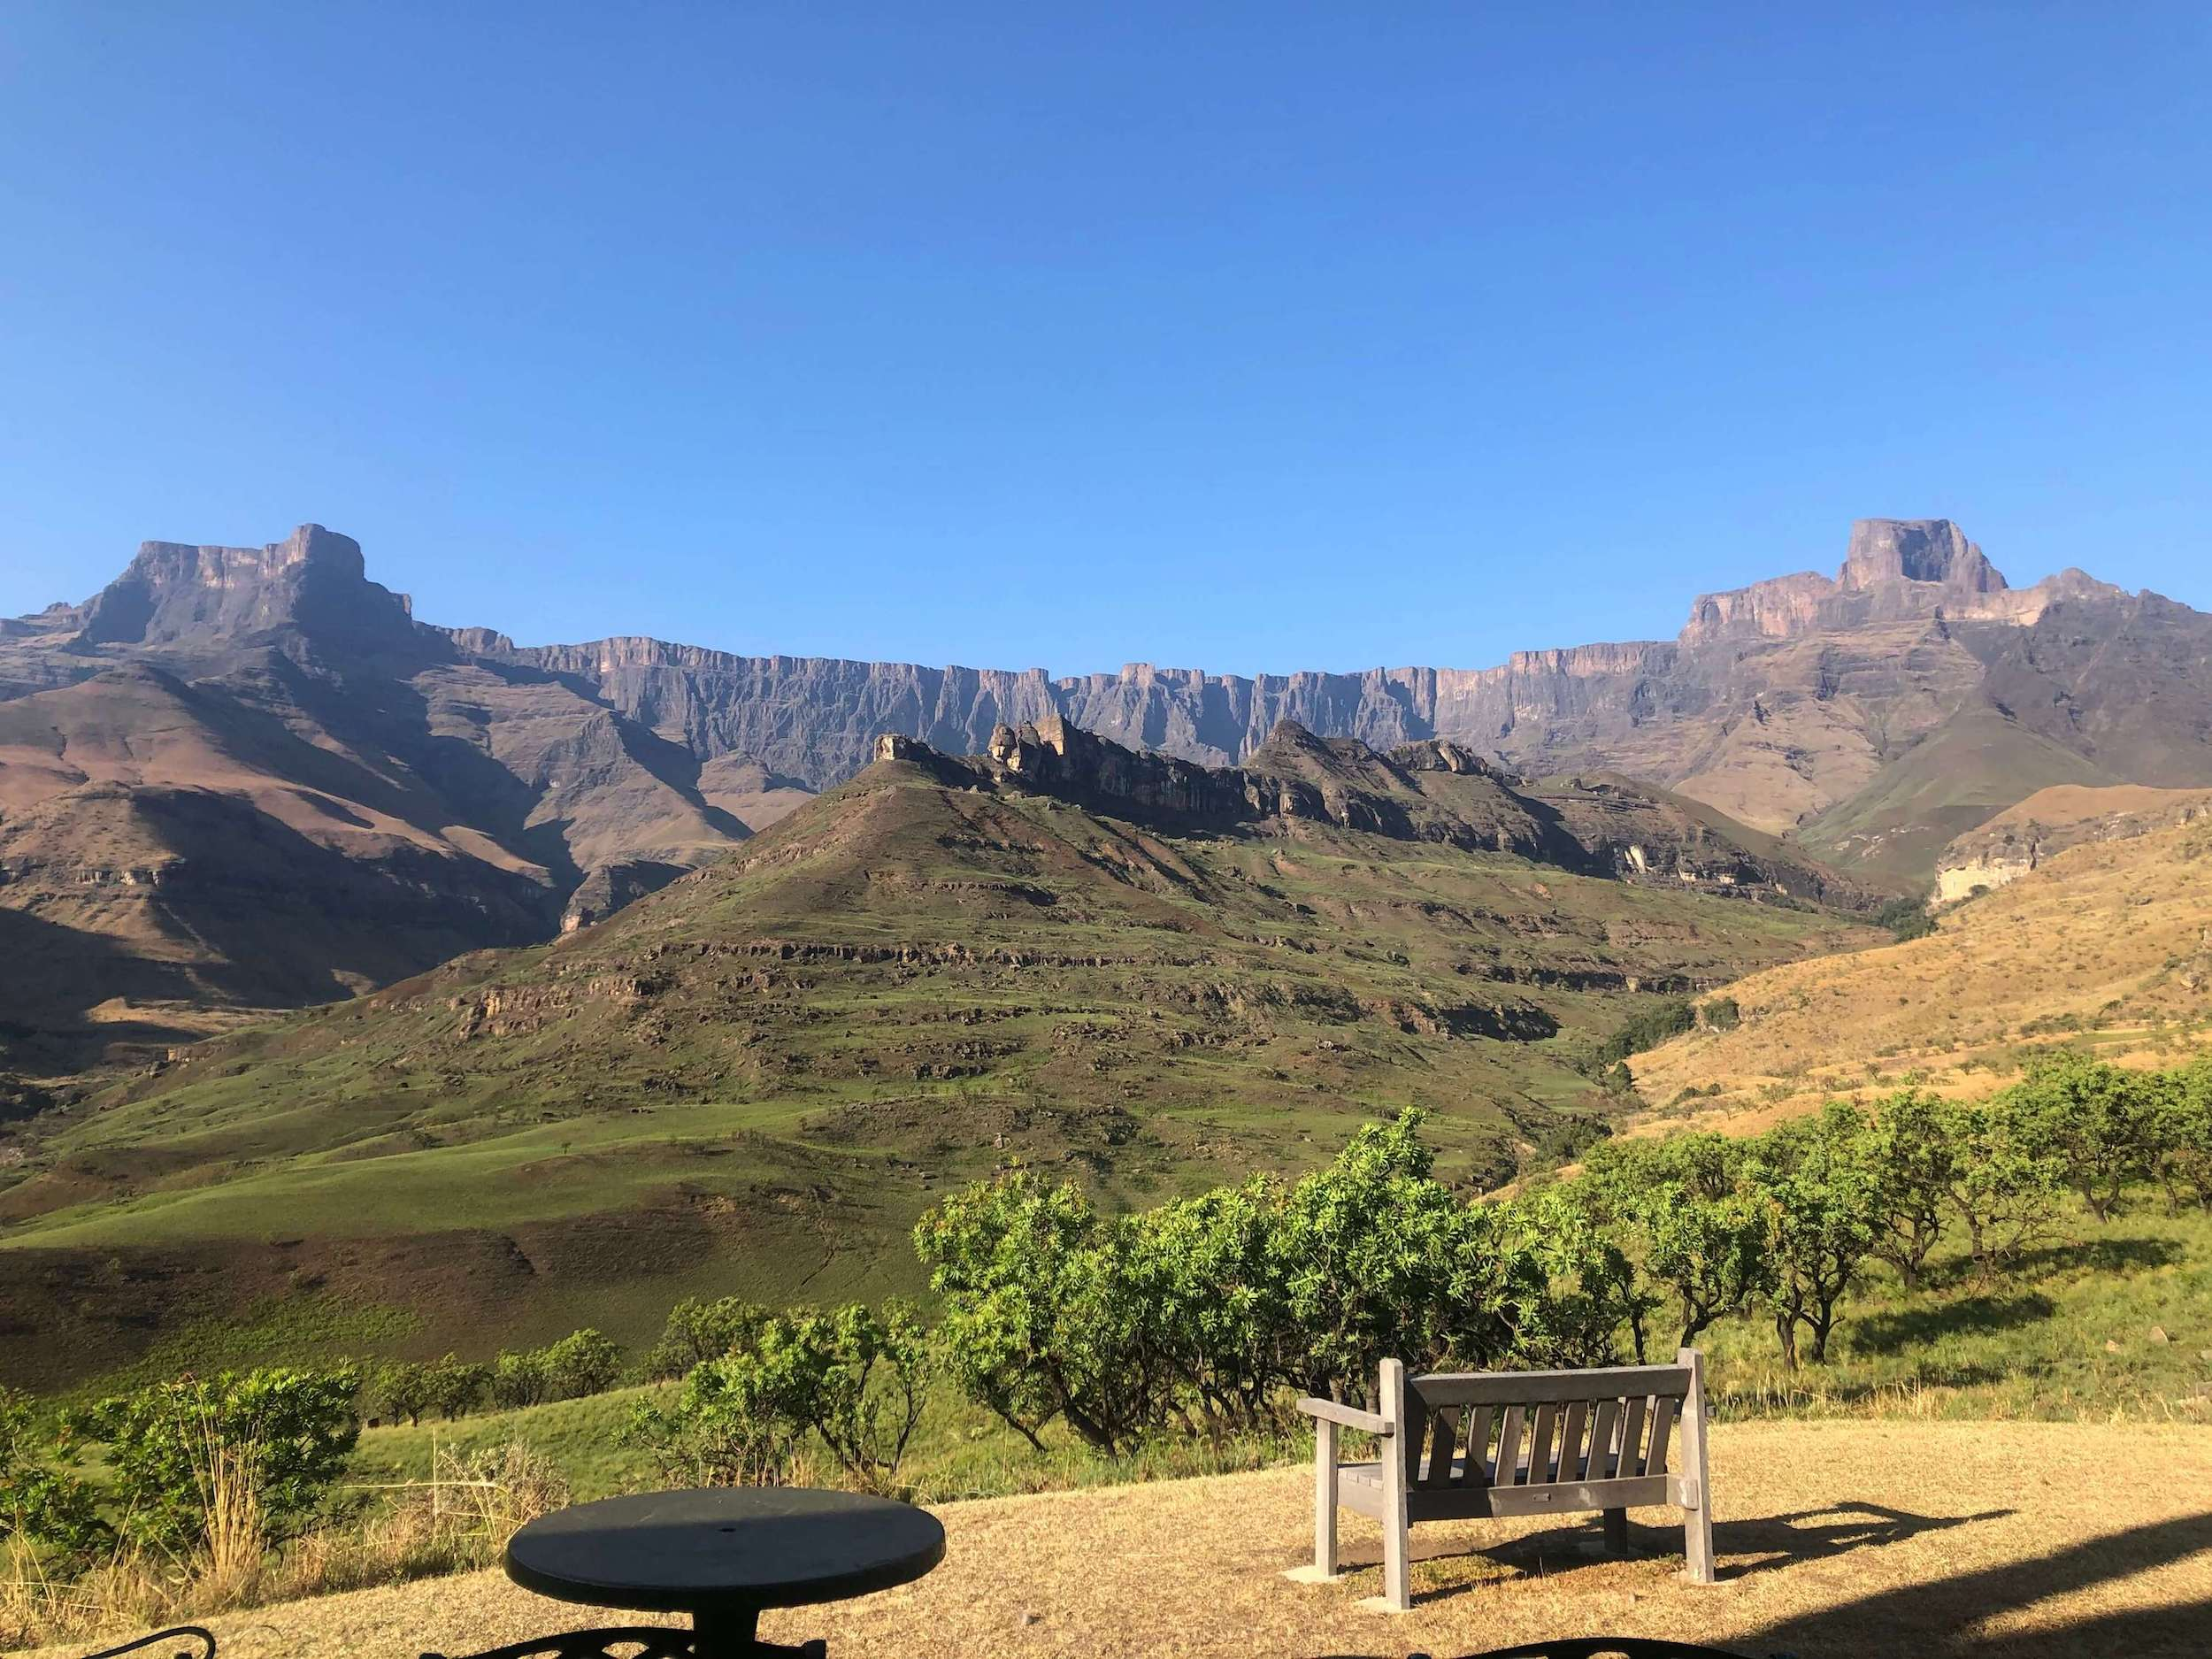 View from Thendele camp over Amphitheatre